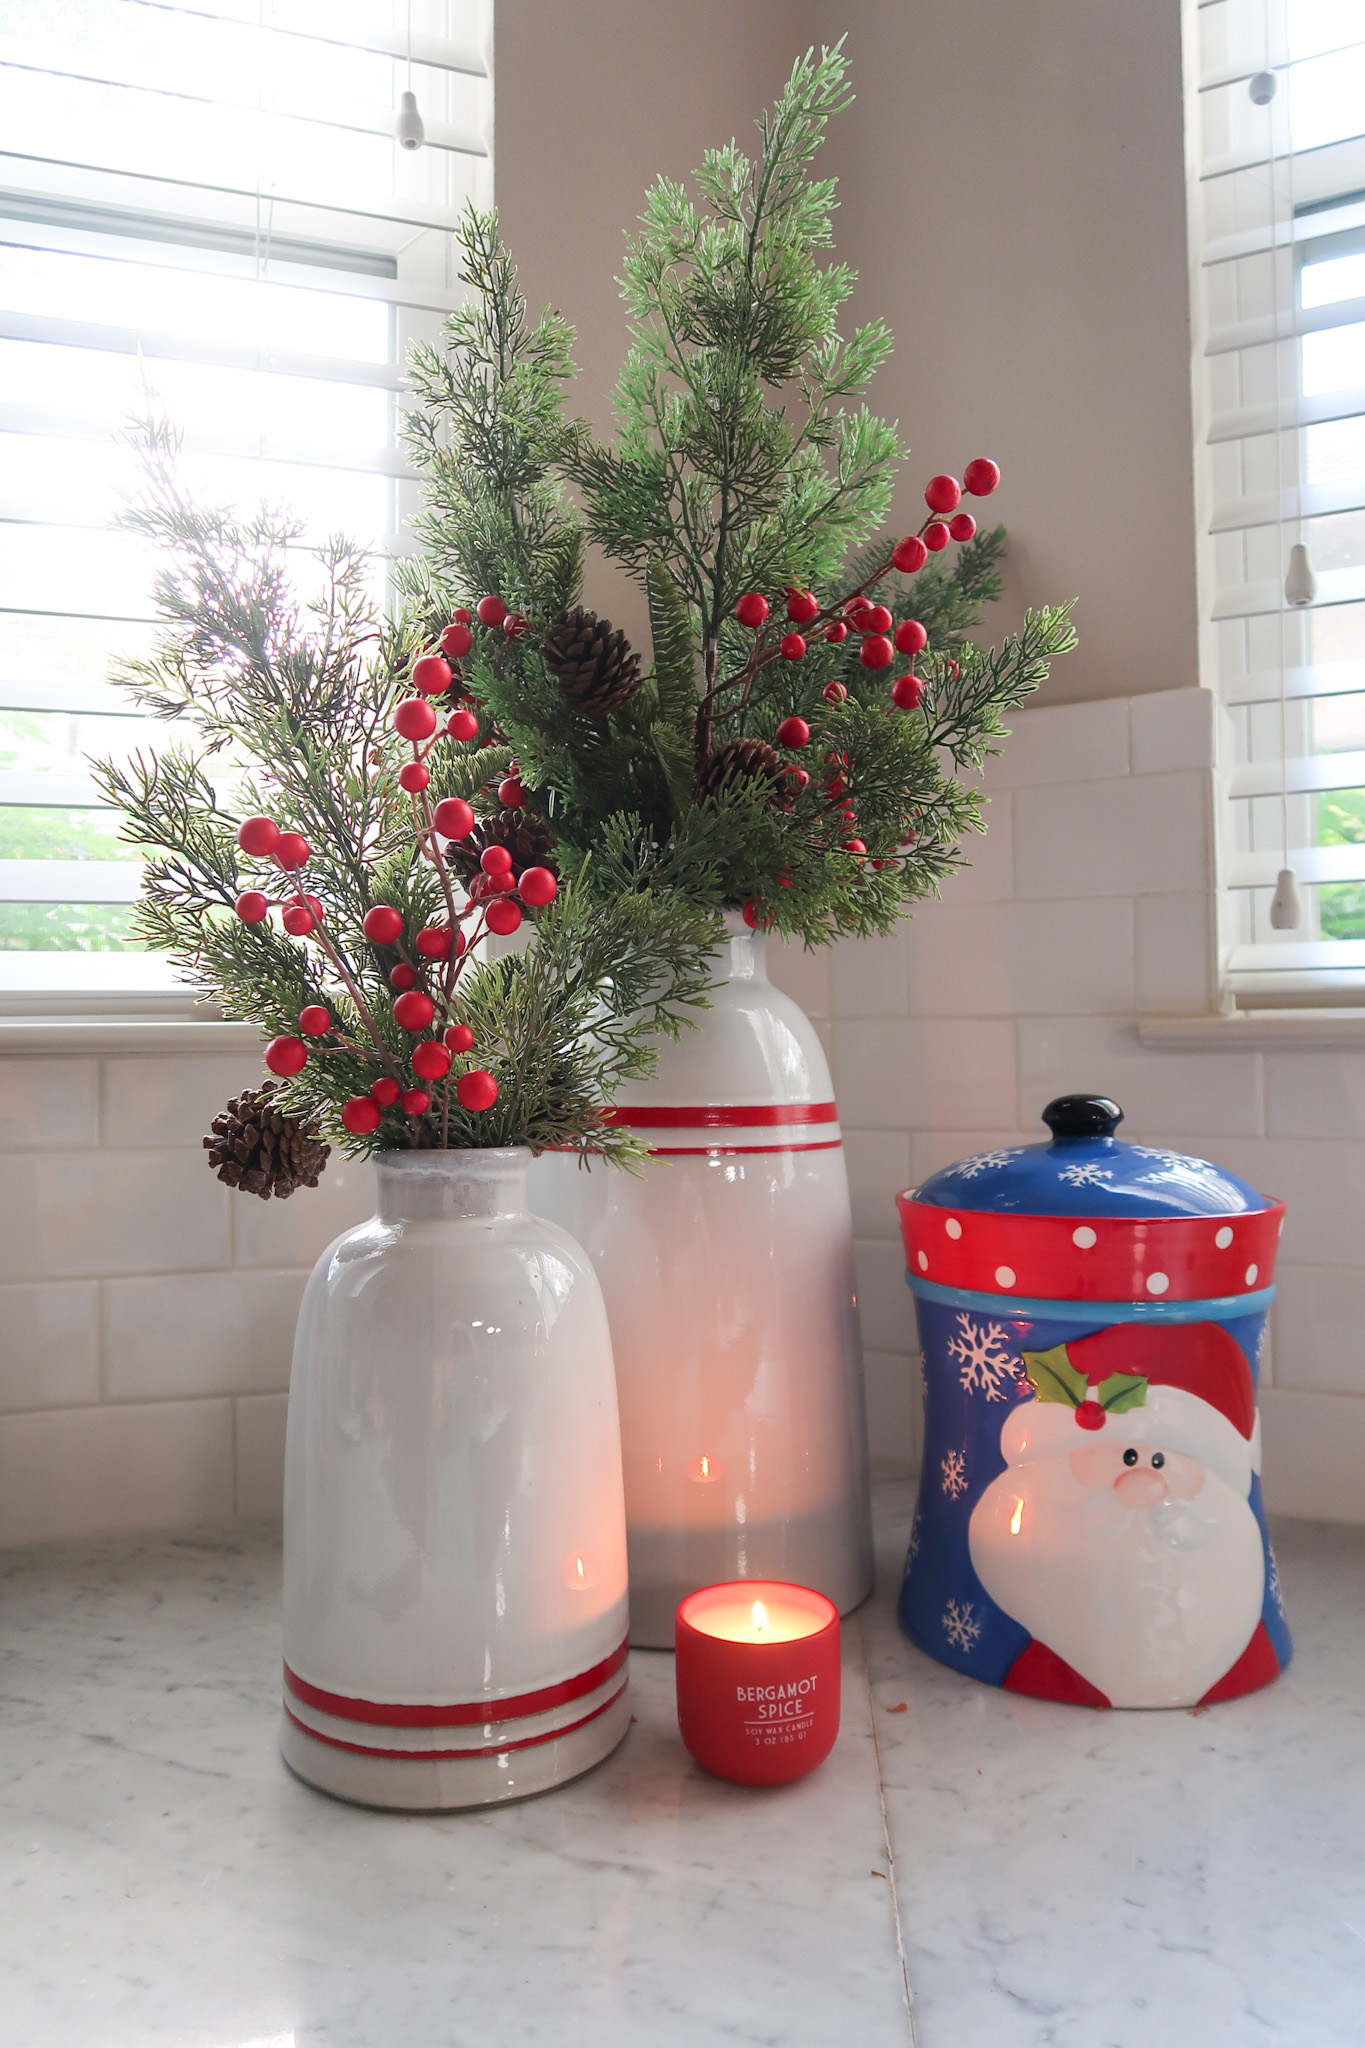 Christmas Home Tour, Target Striped Vases, Greenery, Santa Cookie Jar, Candle